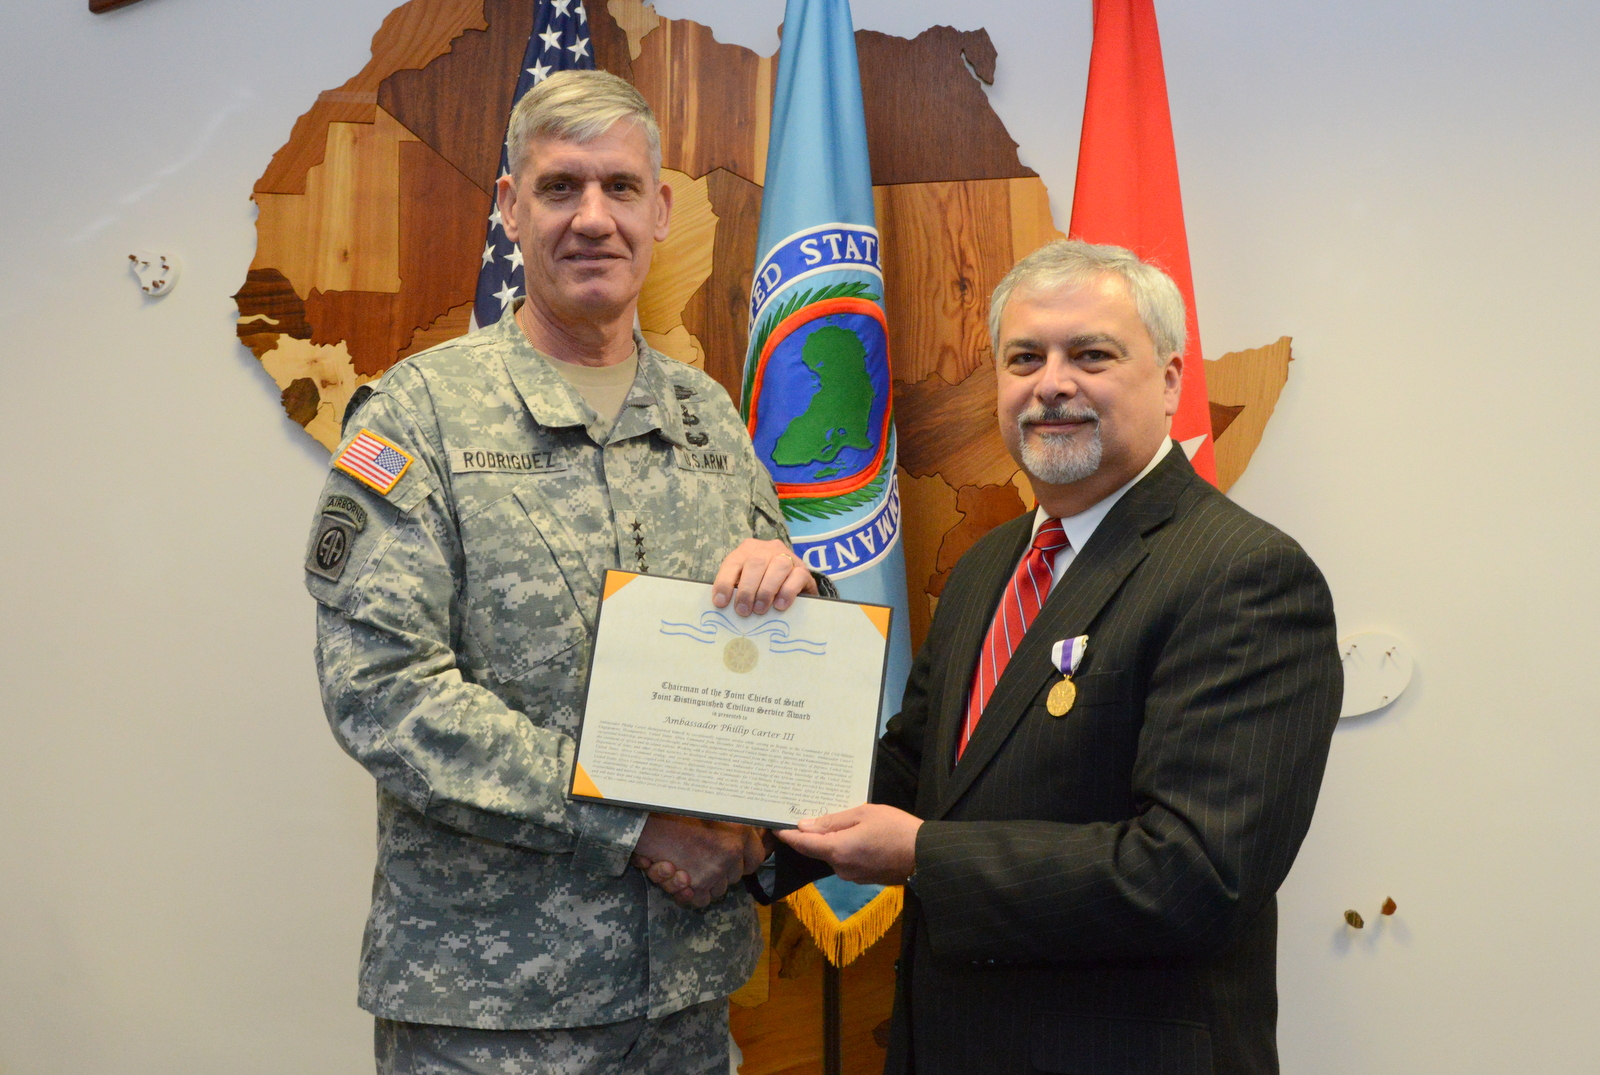 U.S. Army Gen. David Rodriguez, left, commander of U.S. Africa Command presents the Joint Distinguished Civilian Service Award to Ambassador Phillip Carter III, the outgoing deputy to the commander for civil military engagement with U.S. Africa Command, during a ceremony at Kelley Barracks, U.S. Army Garrison Stuttgart, Germany, Sept. 17, 2015. Carter served as the commander's senior diplomat since November 2013.